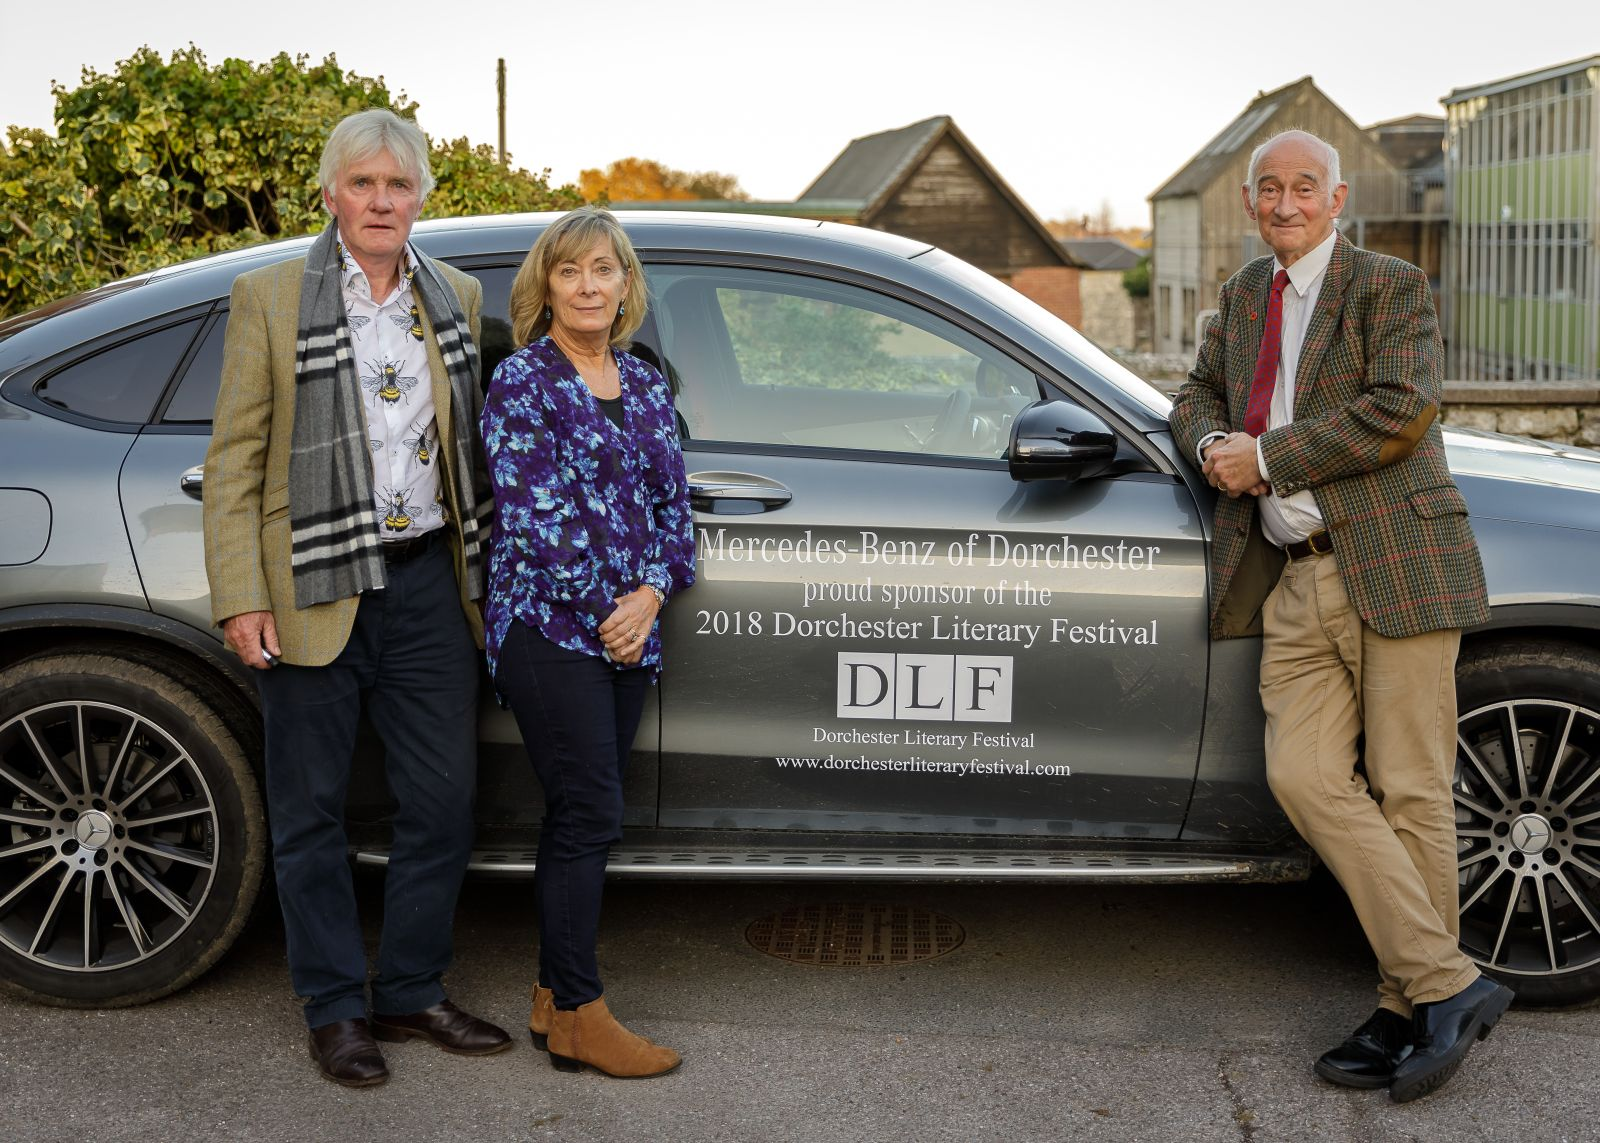 Festival Cars courtesy of Mercedes with Co Directors Janet Gleeson, Paul Atterbury and Sponsorship Director Paul Gleeson